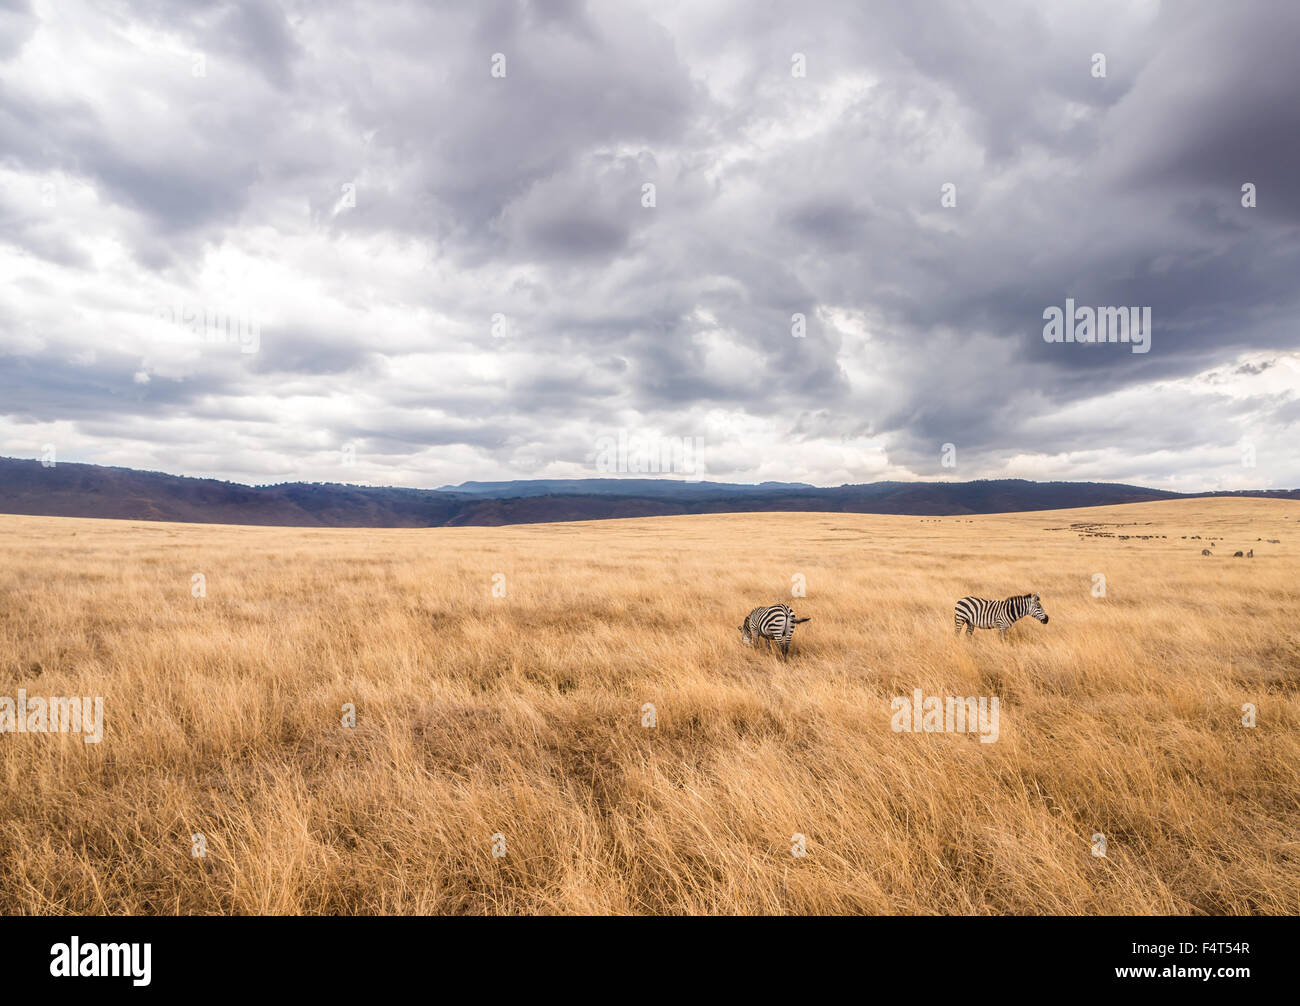 Zebras in Ngorongoro Crater in Africa. Heavy rain coluds in the background. - Stock Image